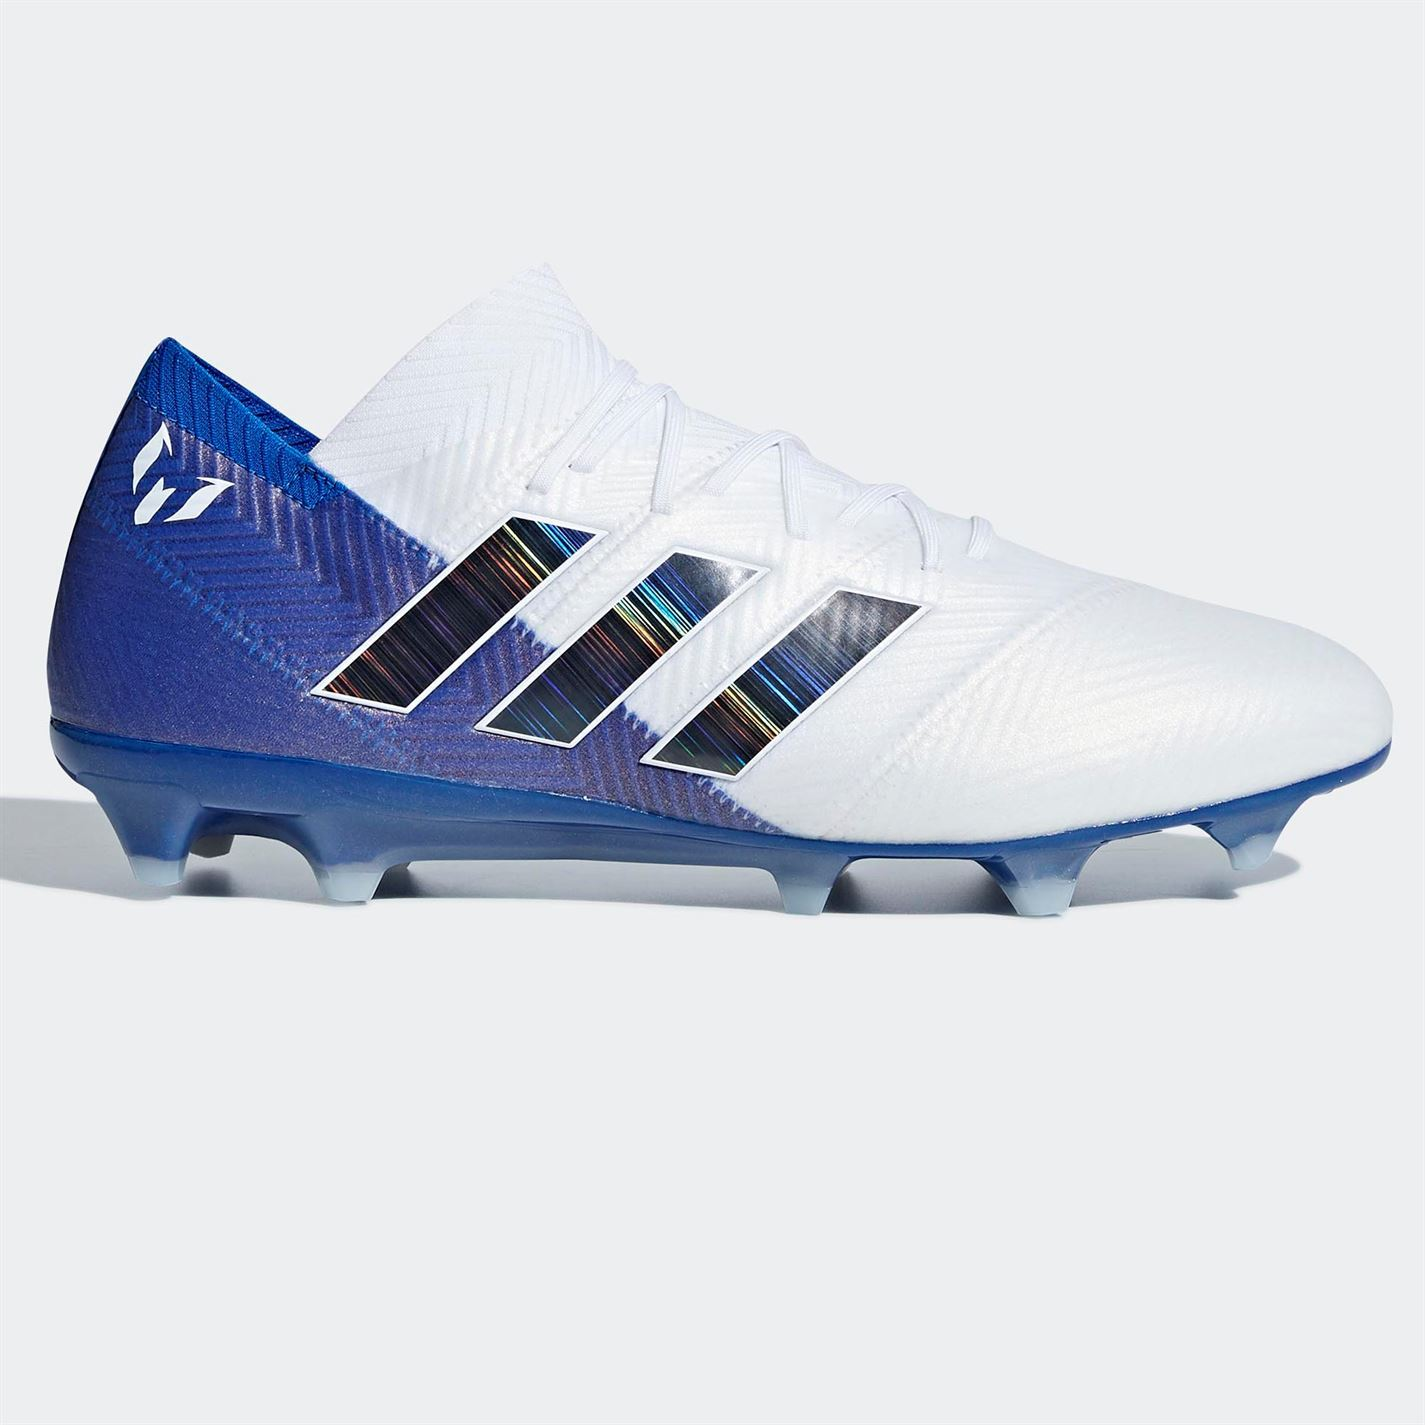 0be6390d290 ... adidas Nemeziz Messi 18.1 FG Firm Ground Football Boots Mens Soccer  Shoes Cleats